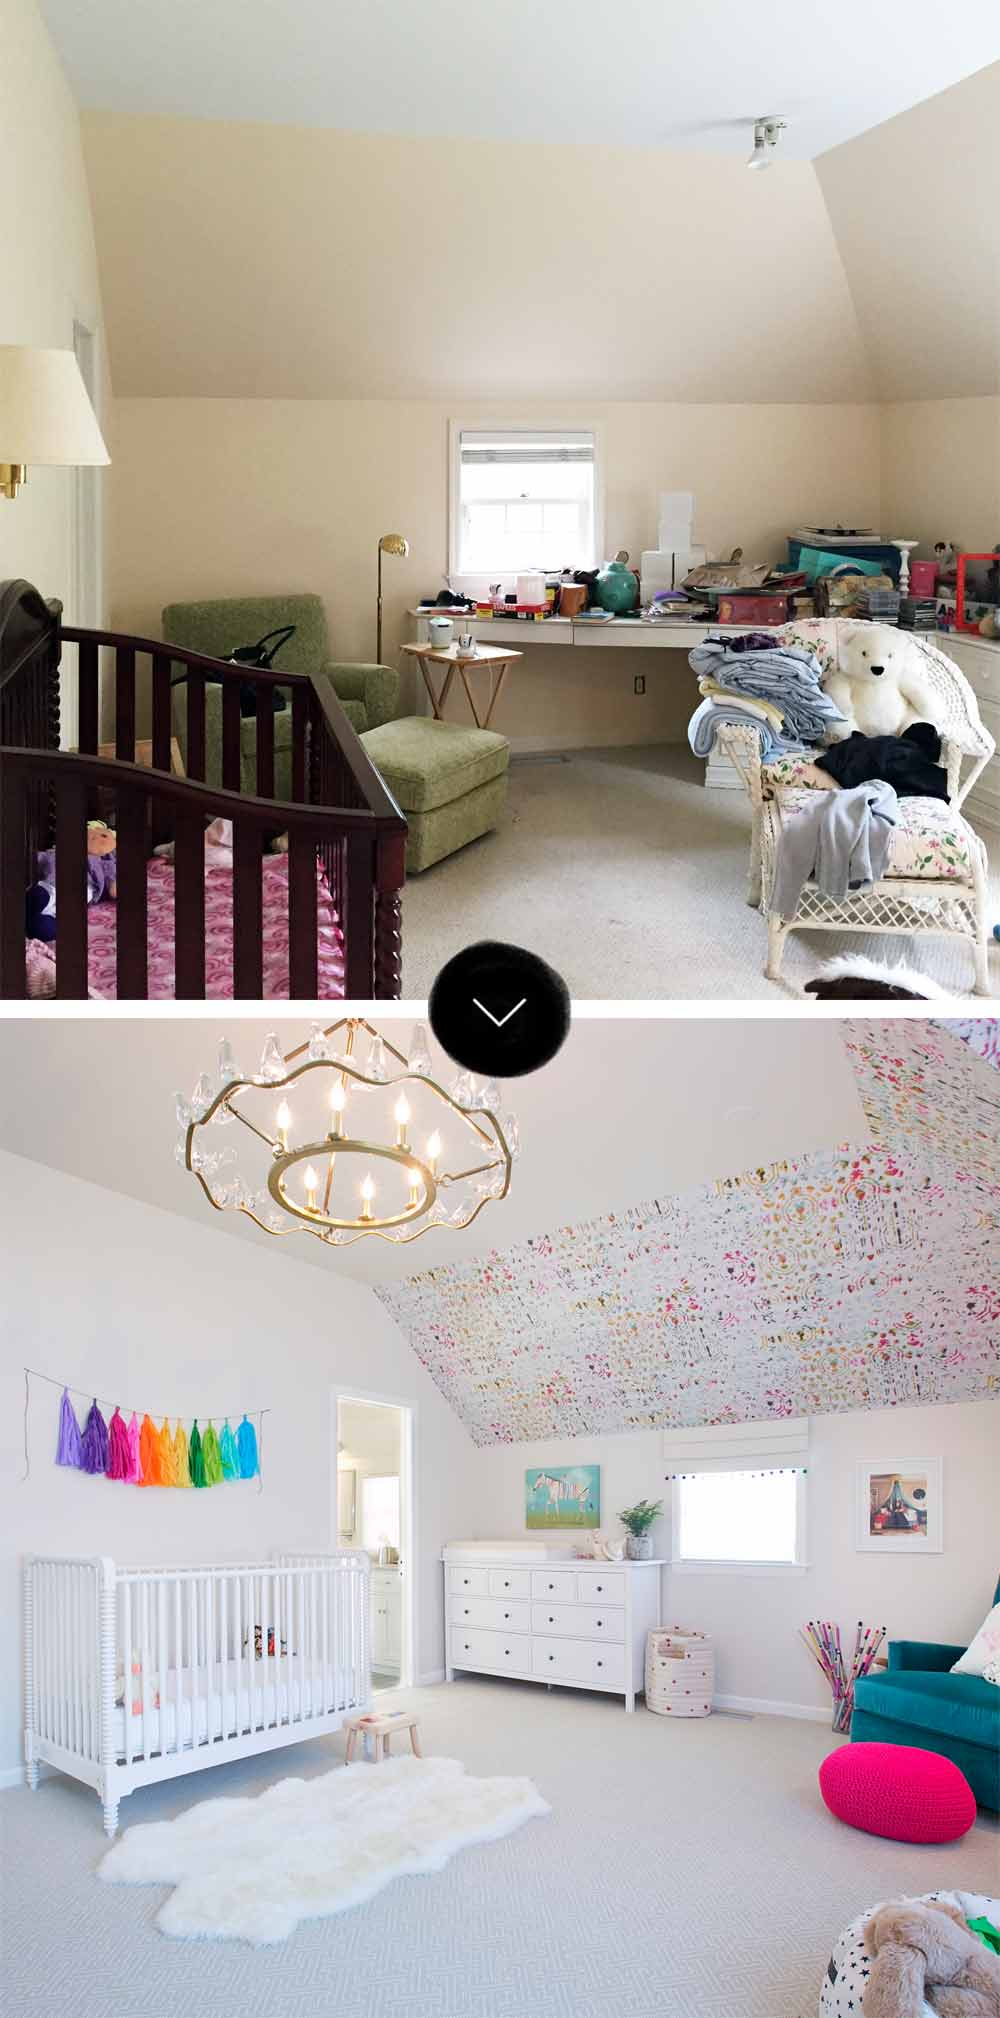 Before & After: A Modern Multigenerational Family Home in Scarsdale, on Design*Sponge